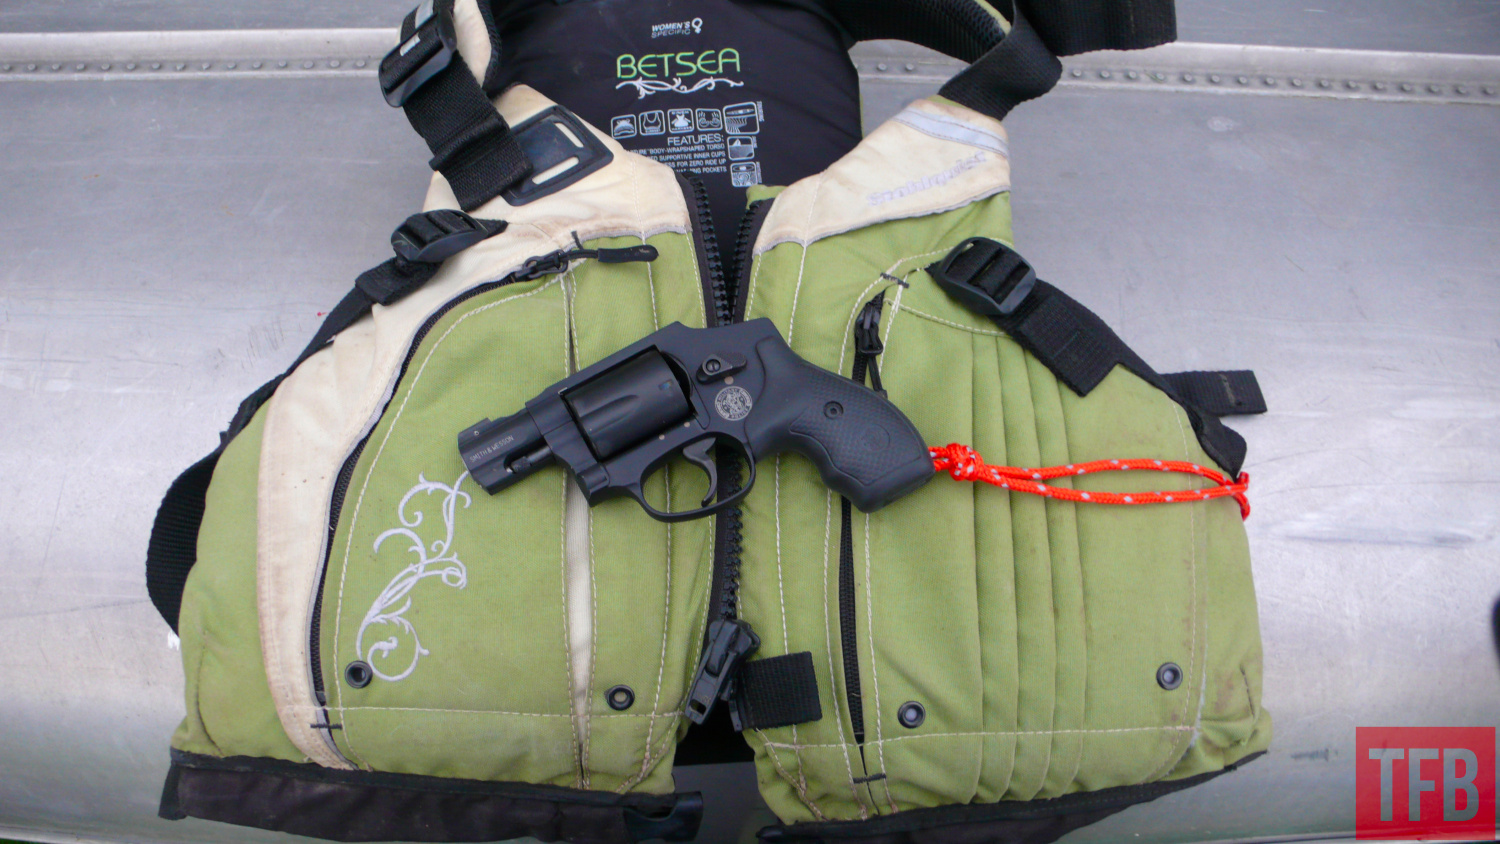 concealed carry while paddling